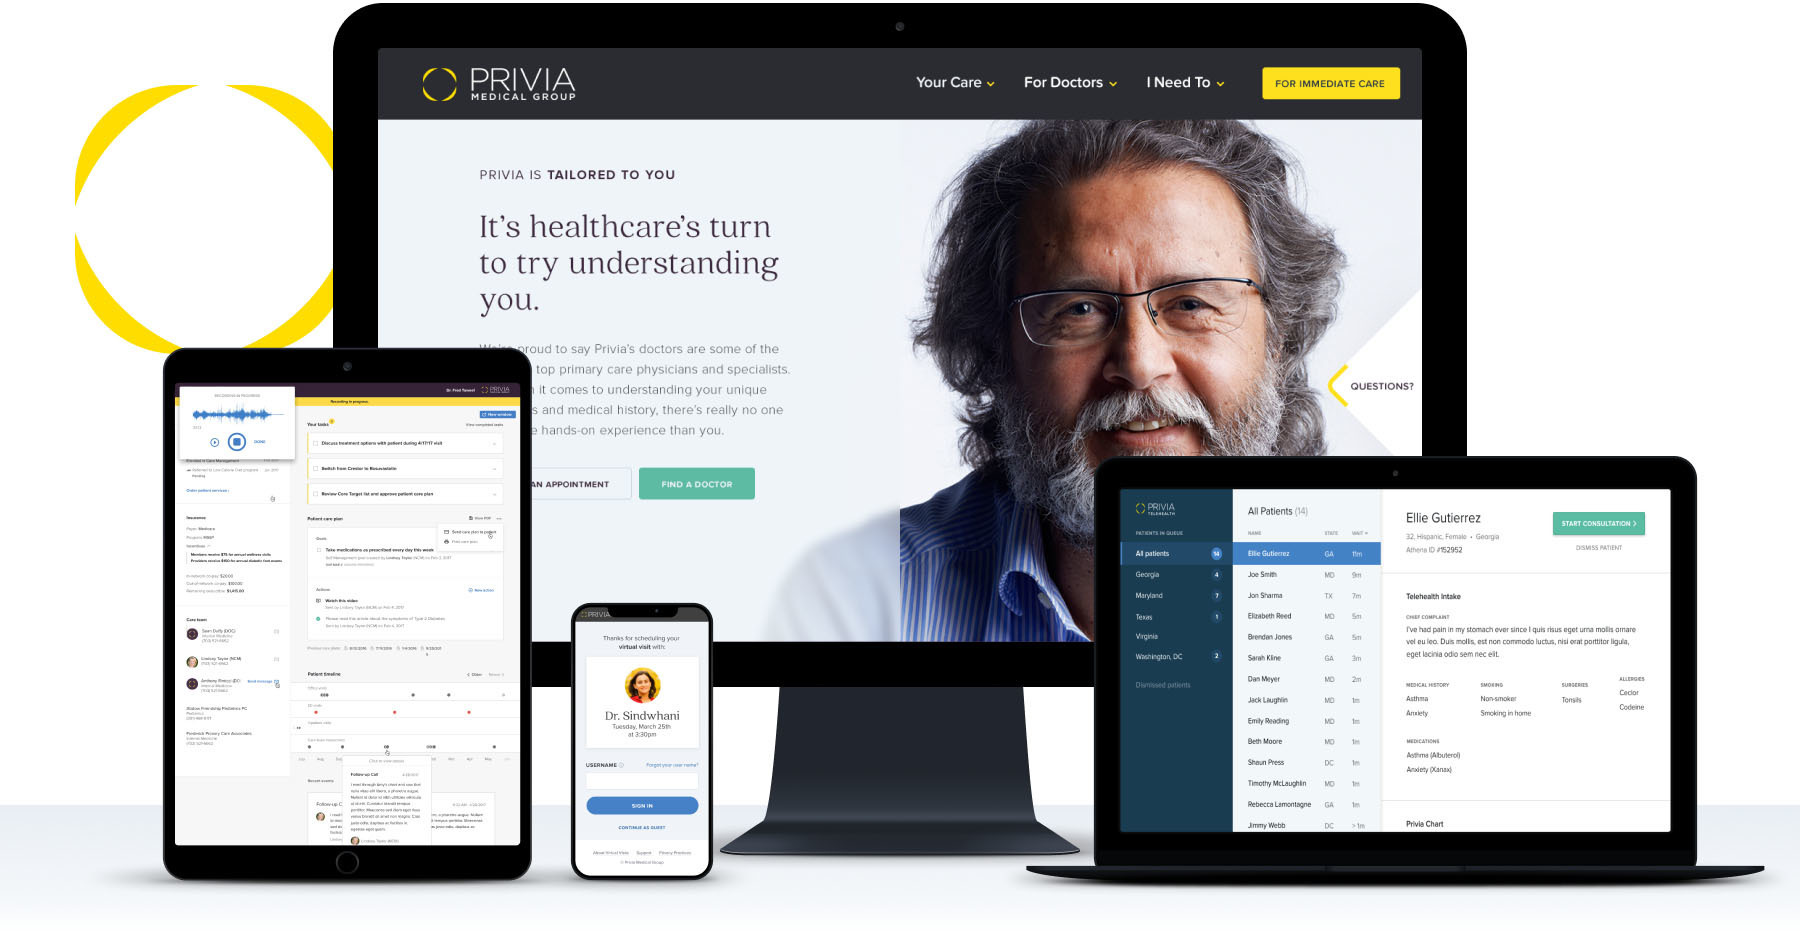 An image of Privia healthcare products and marketing sites on various screens - tablet, mobile, laptop, and desktop